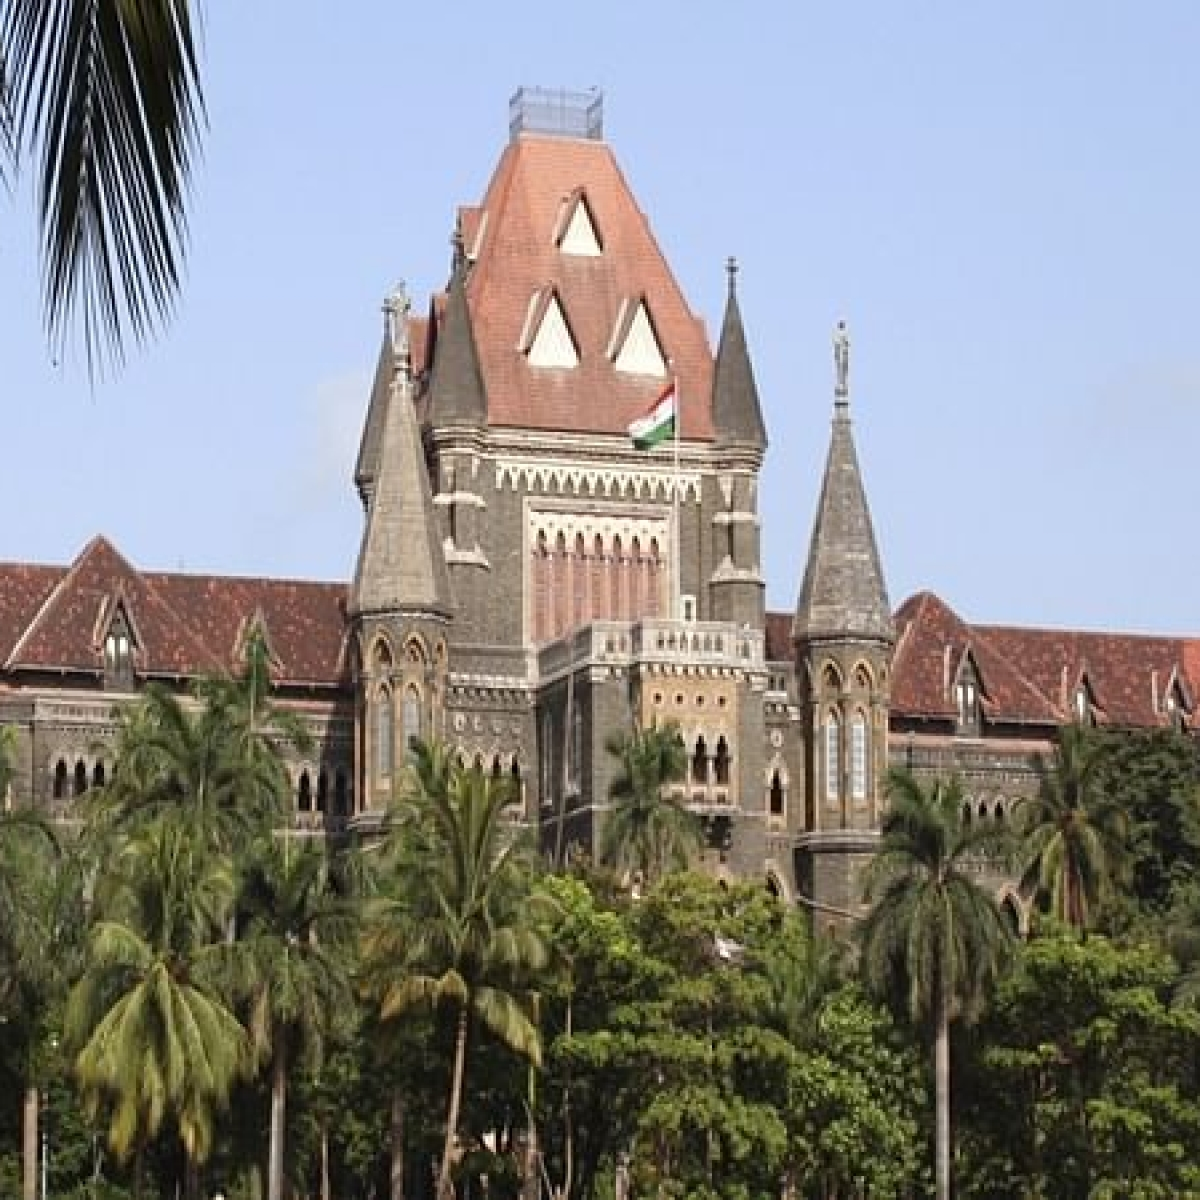 FPJ Legal: Reserve 20% oxygen beds for future shortage, Bombay HC tells Nagpur authorities